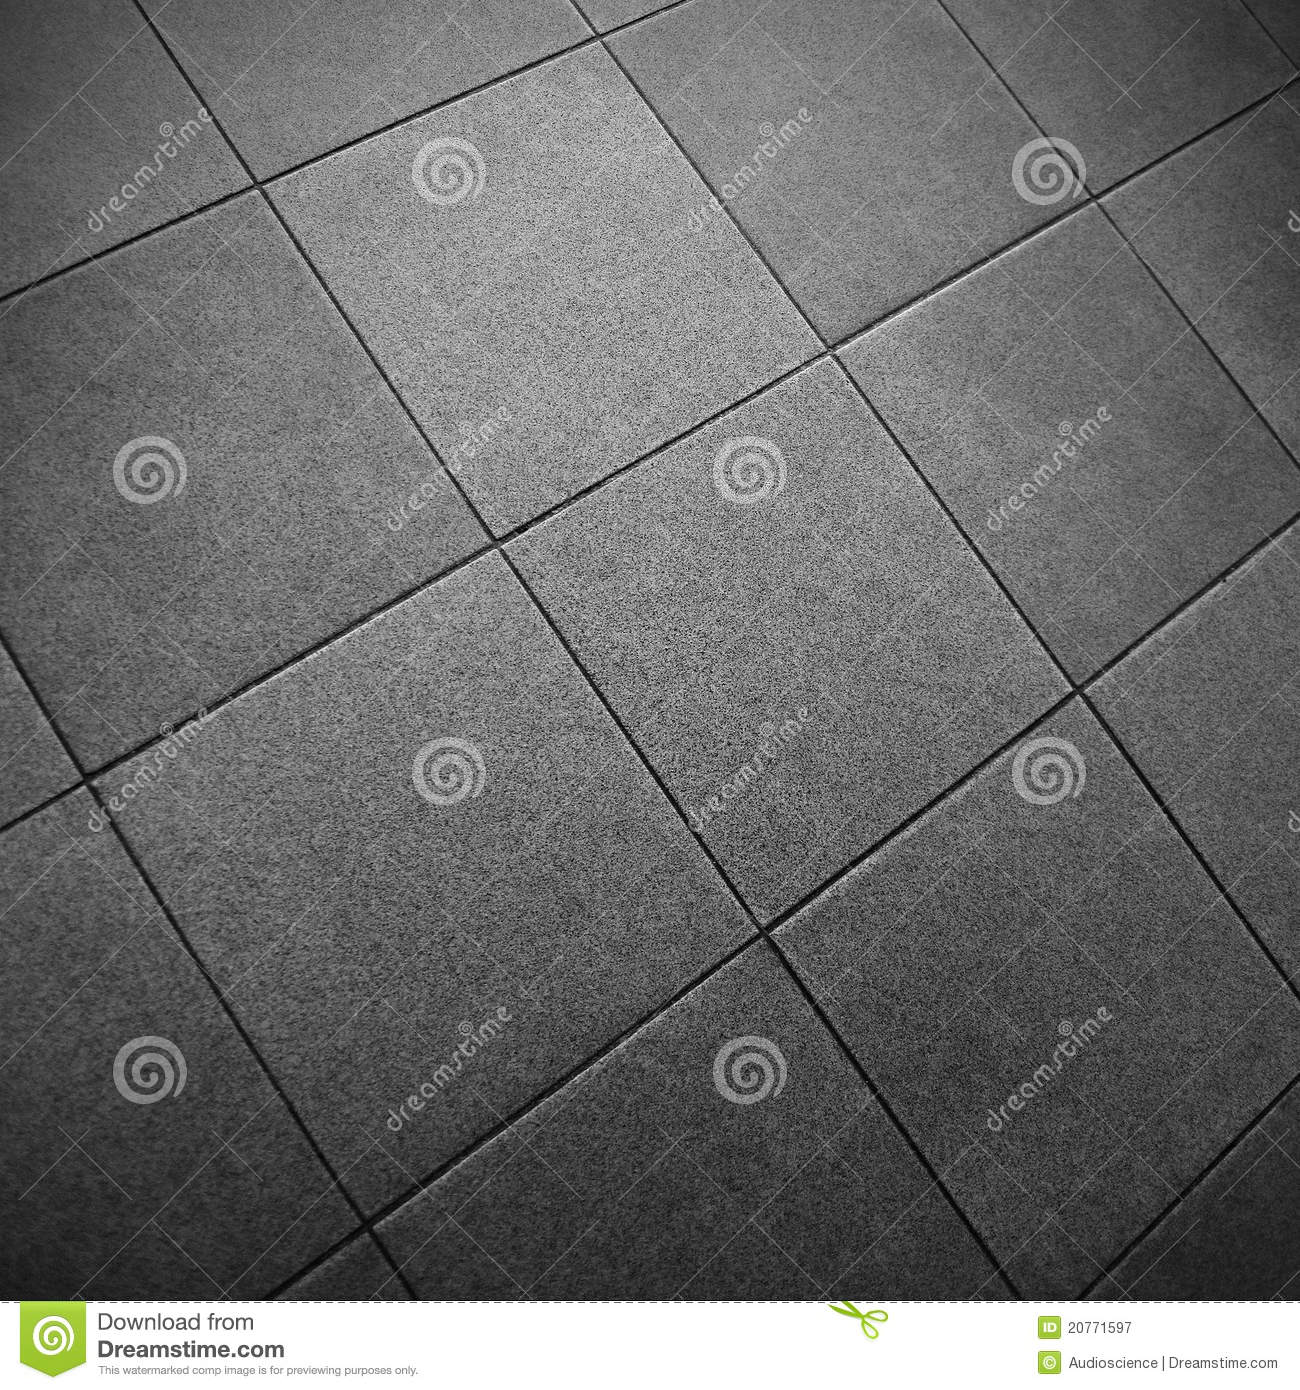 Gray Square Tile Floor Stock Image Image Of Closeup 20771597